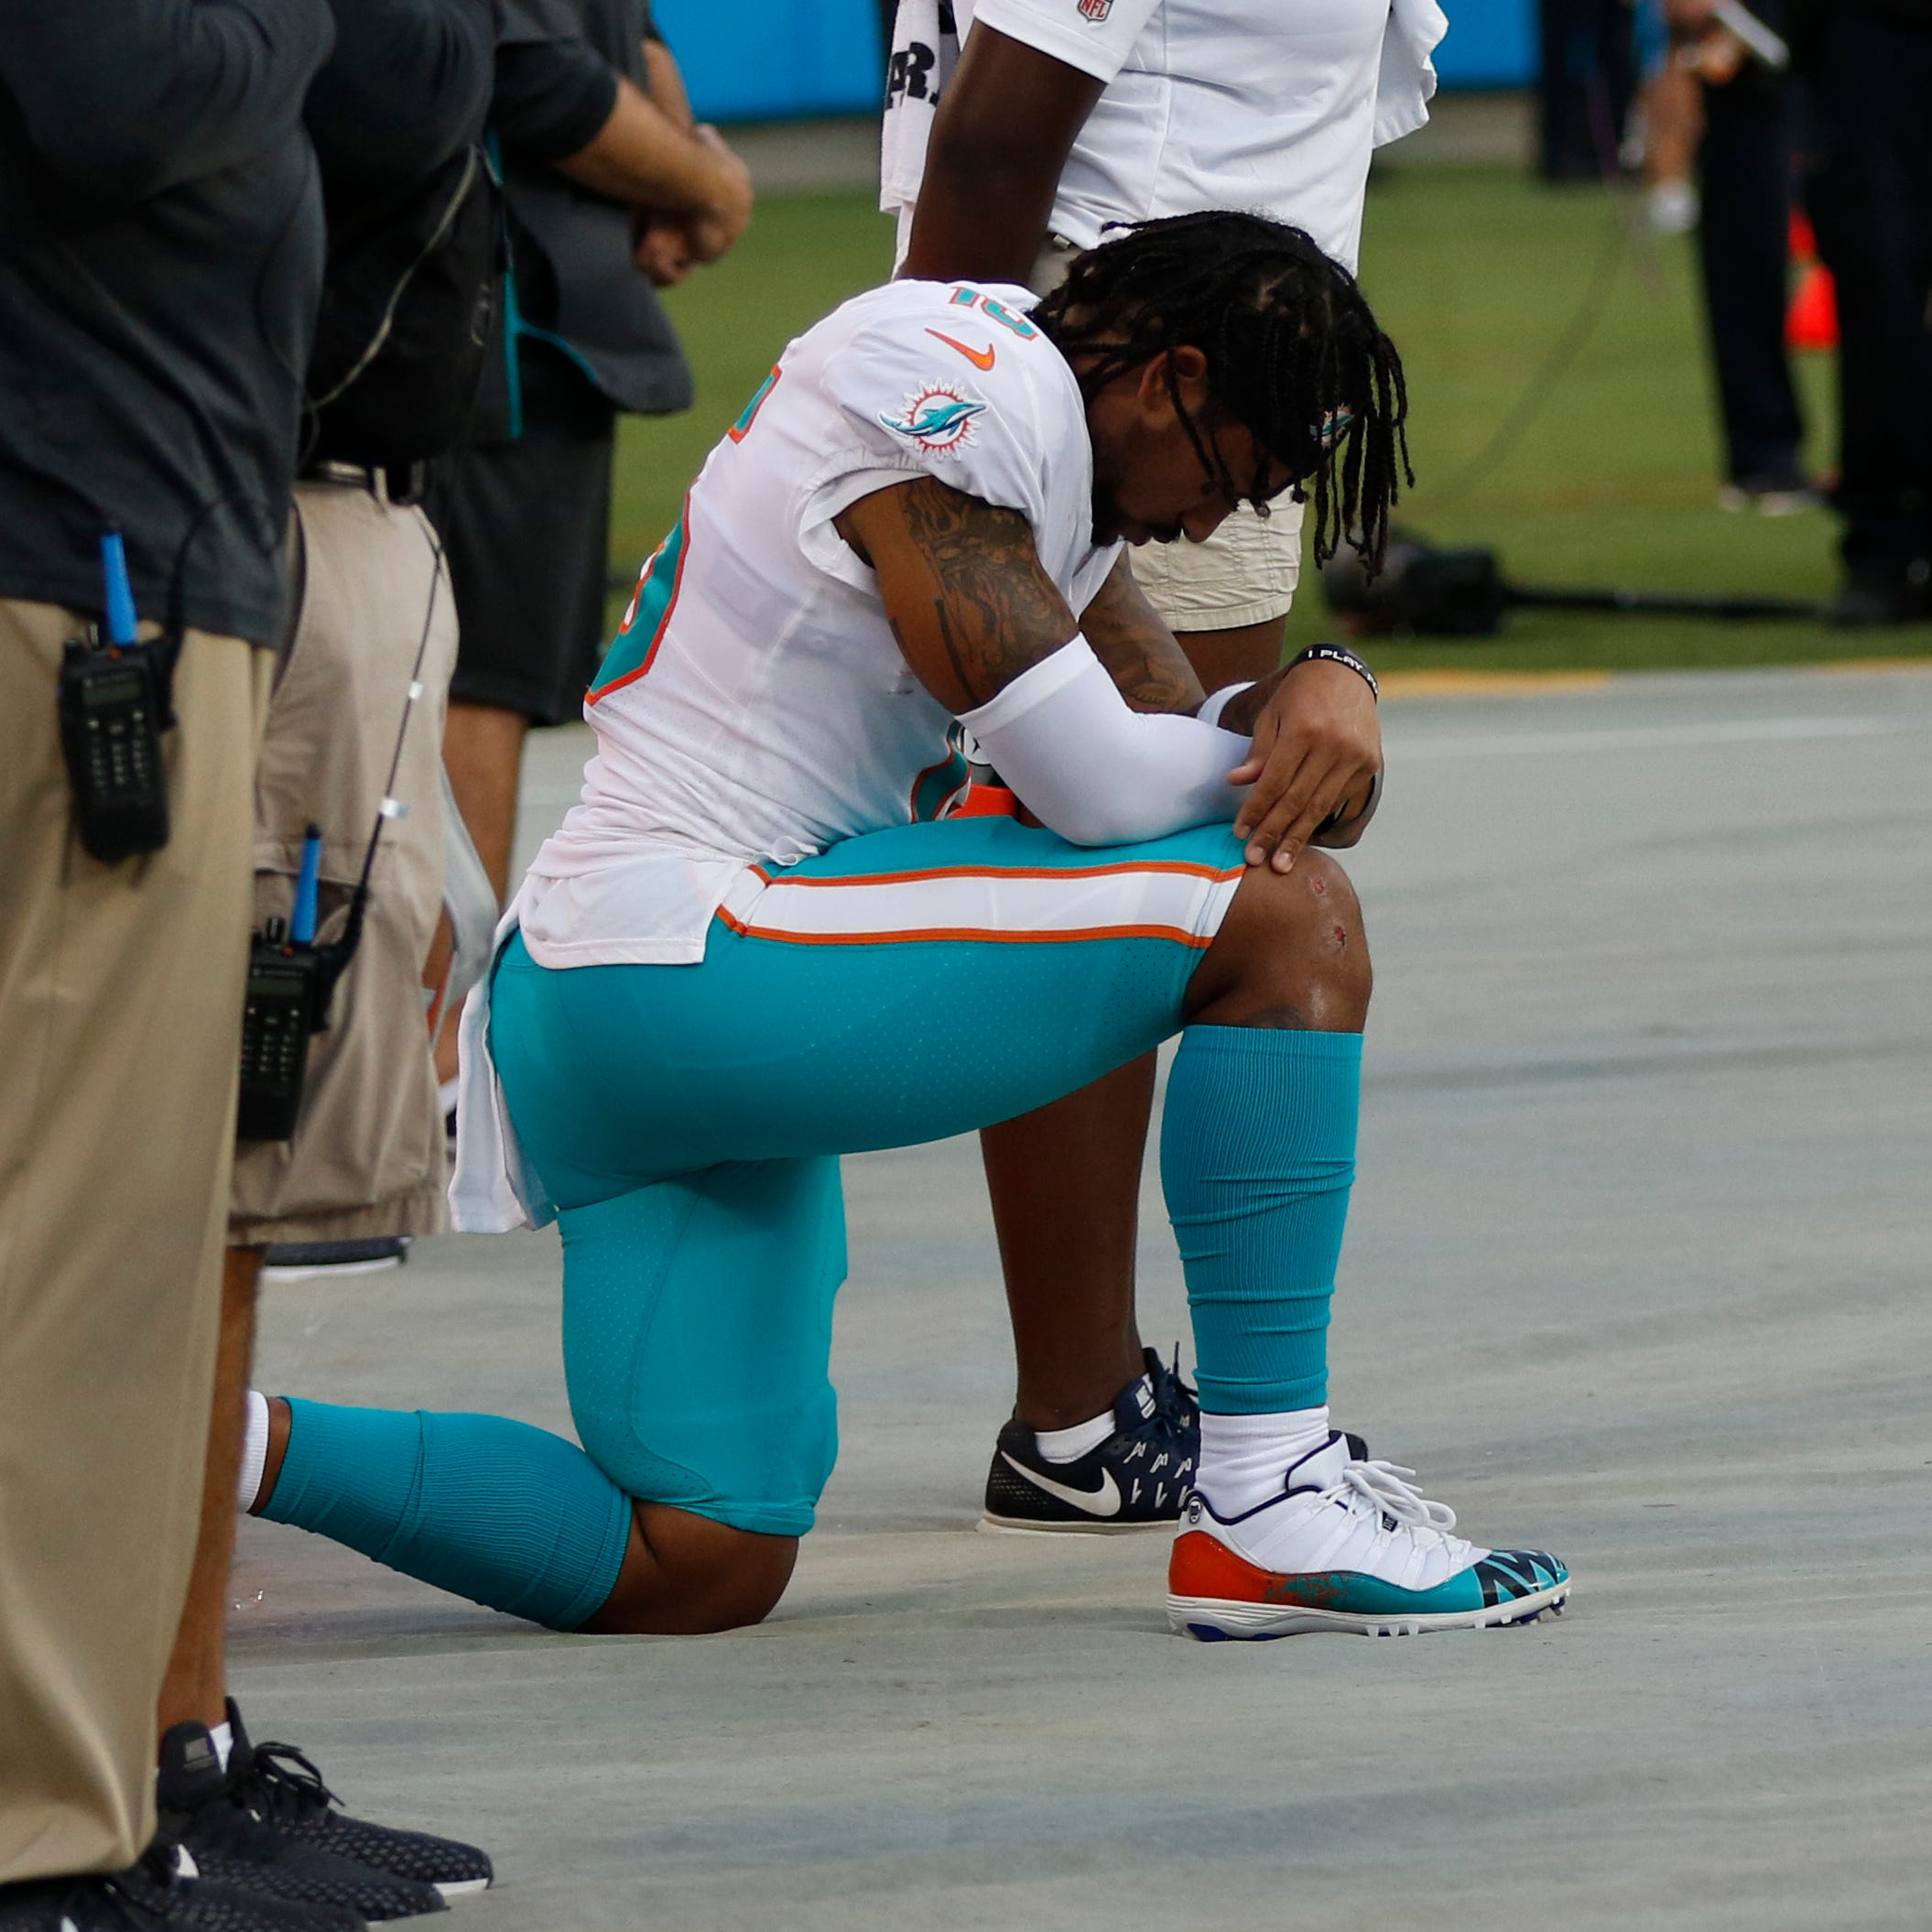 Anthem protests dwindle; strong reactions don't: Letter